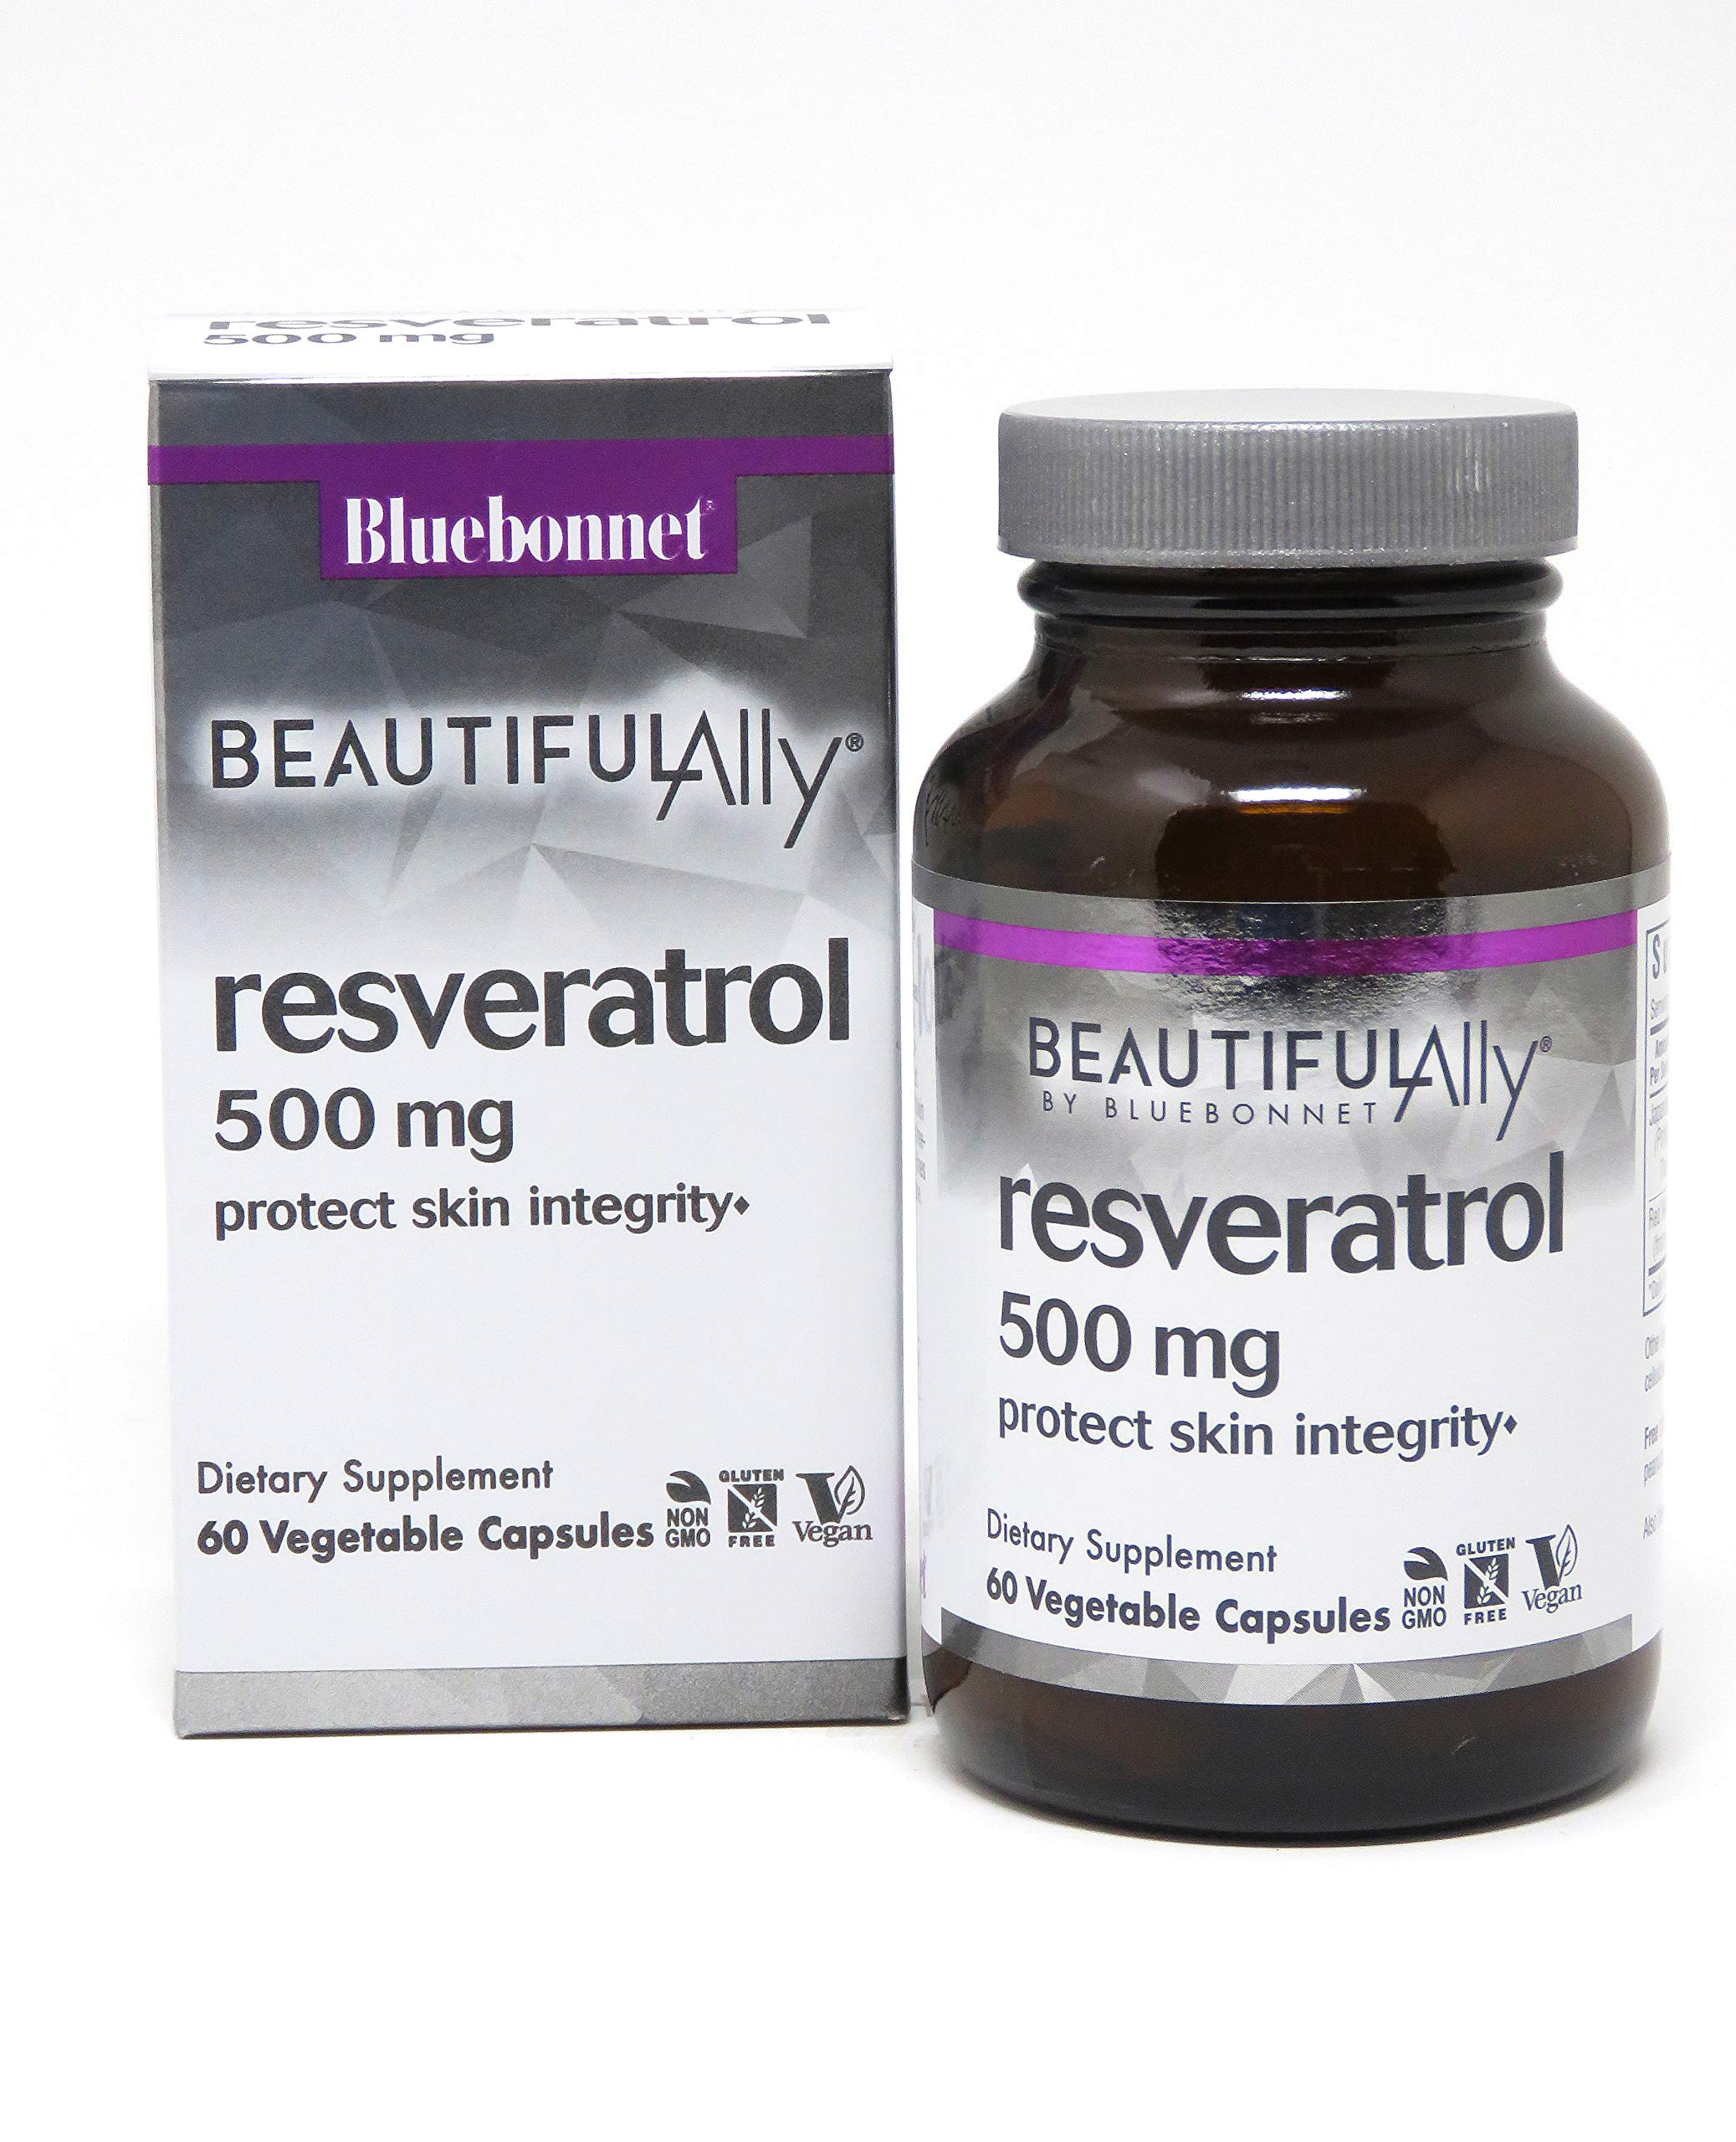 Bluebonnet Nutrition Beautiful Ally Resveratrol 500 mg Vegetarian Casules, 60 count by Bluebonnet